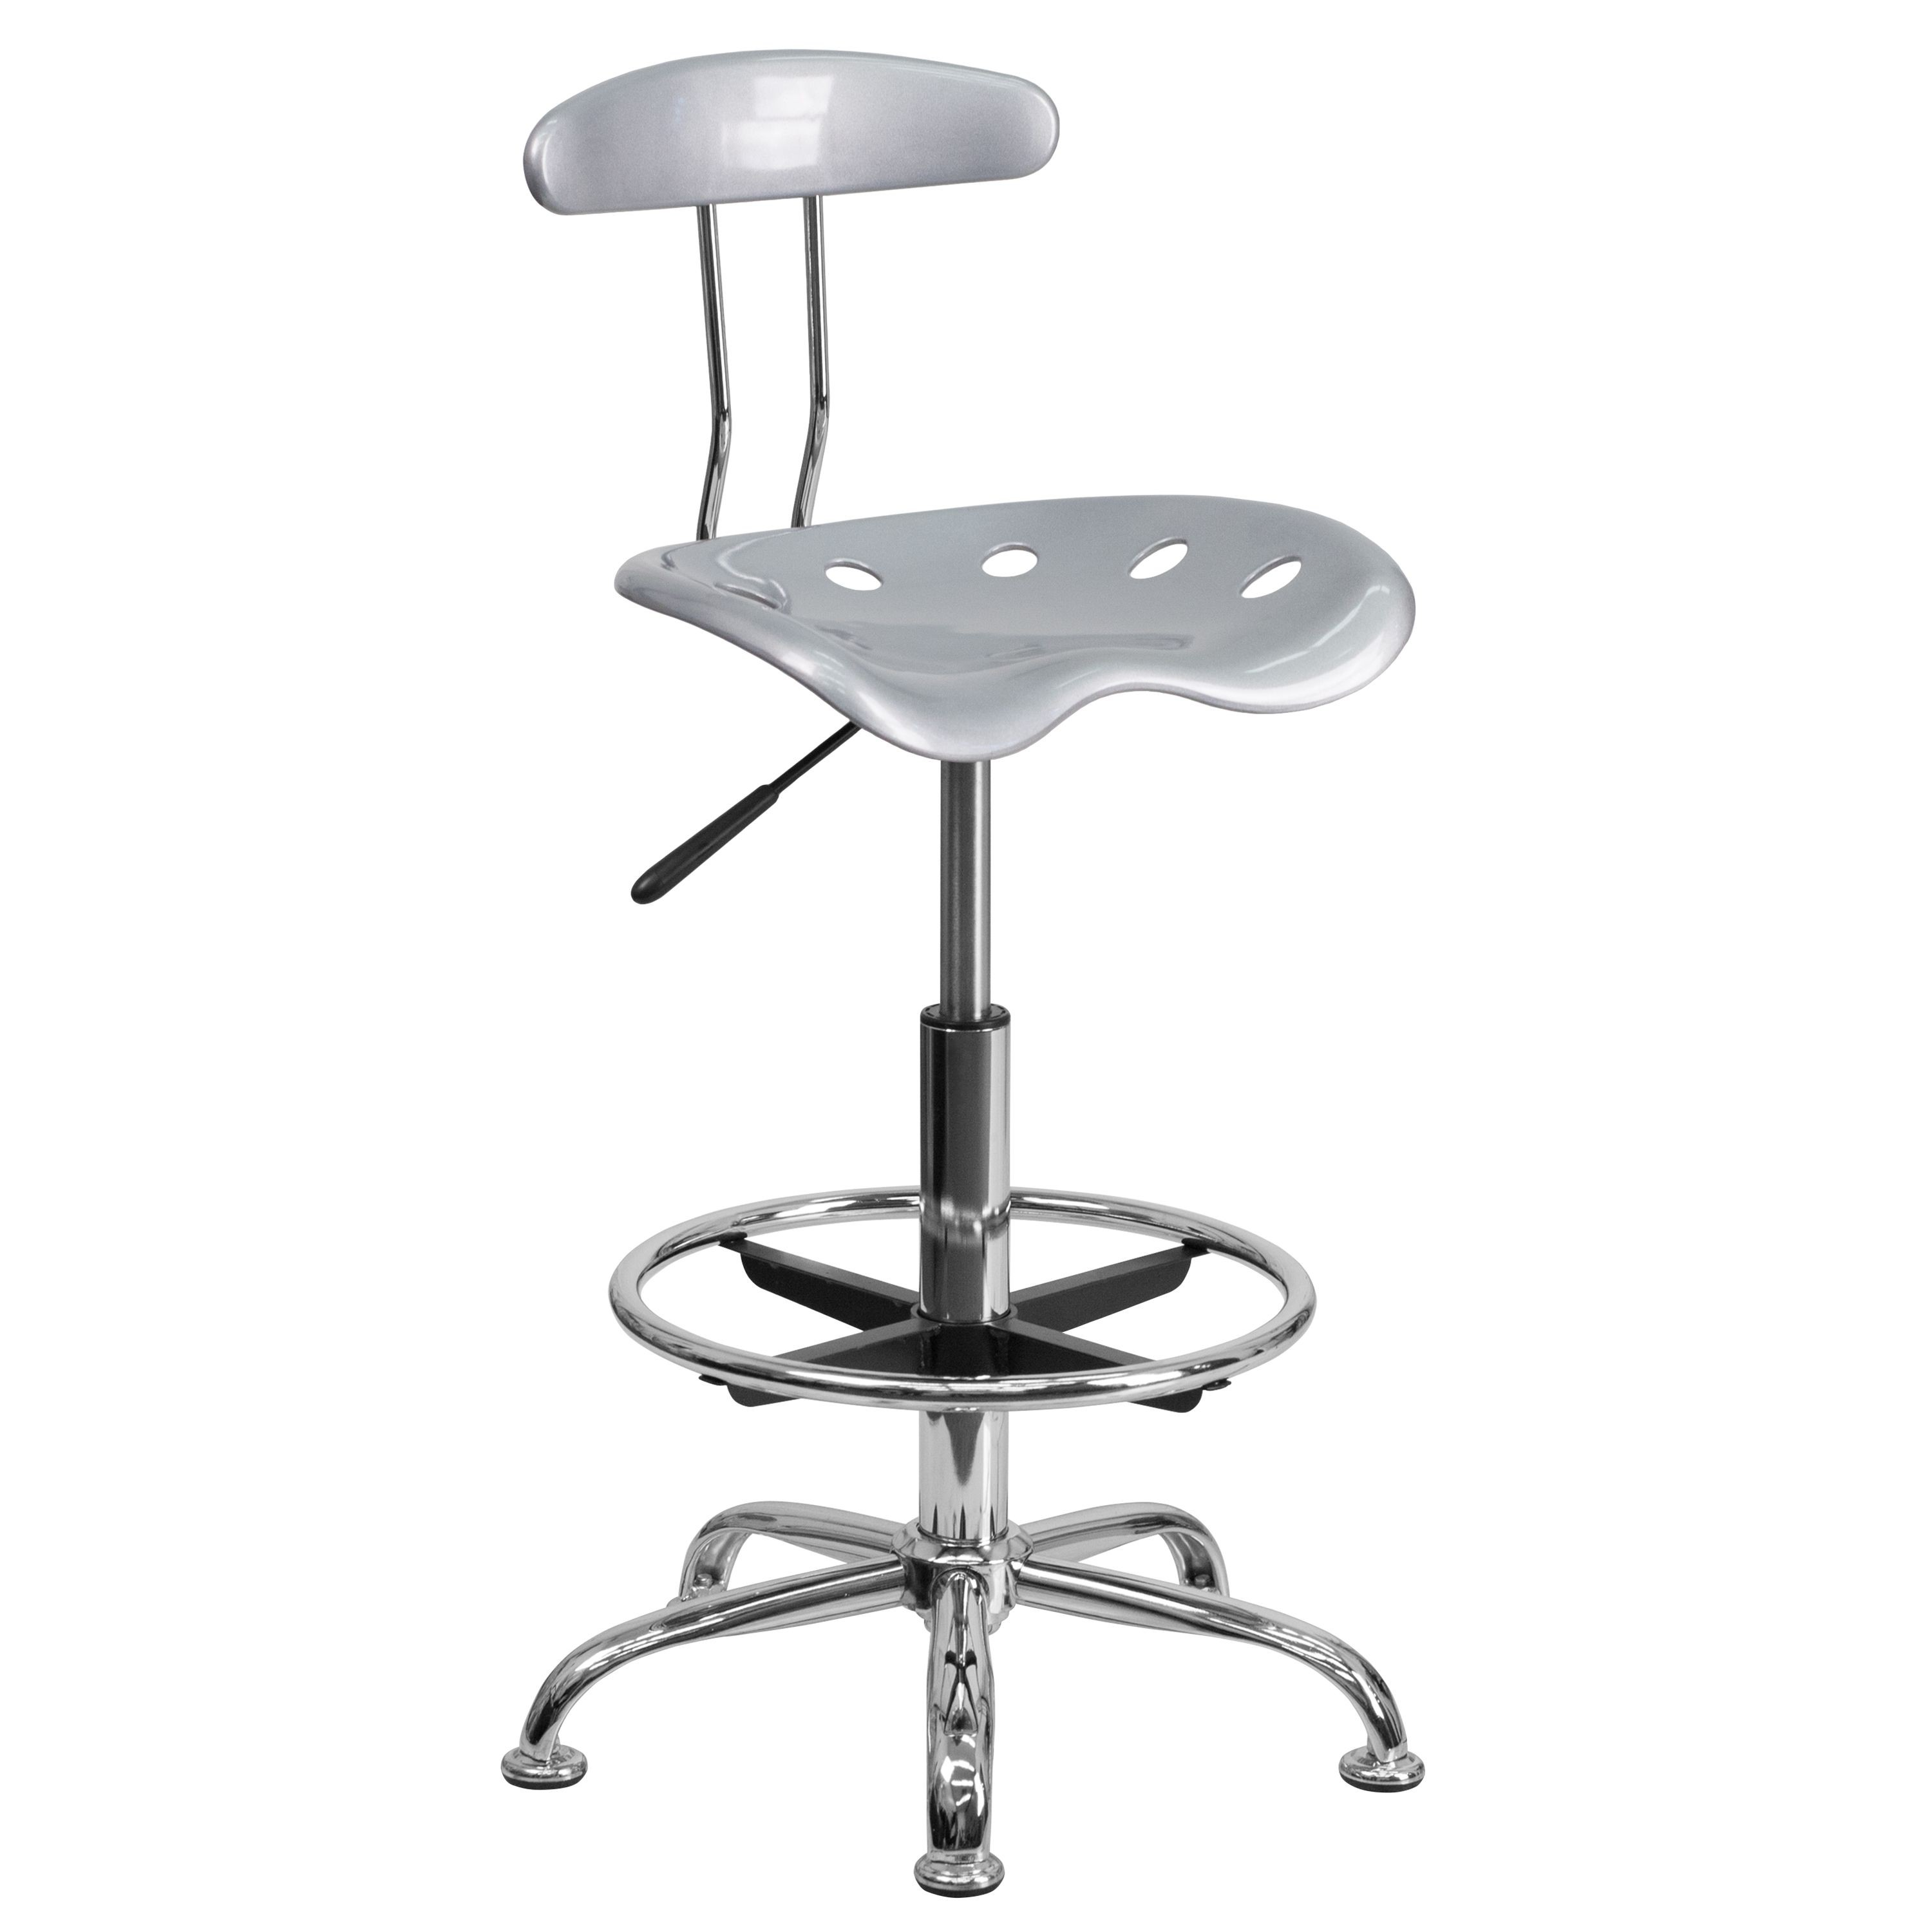 Flash Furniture LF-215-SILVER-GG Vibrant Silver and Chrome Bar Height Drafting Stool with Tractor Seat